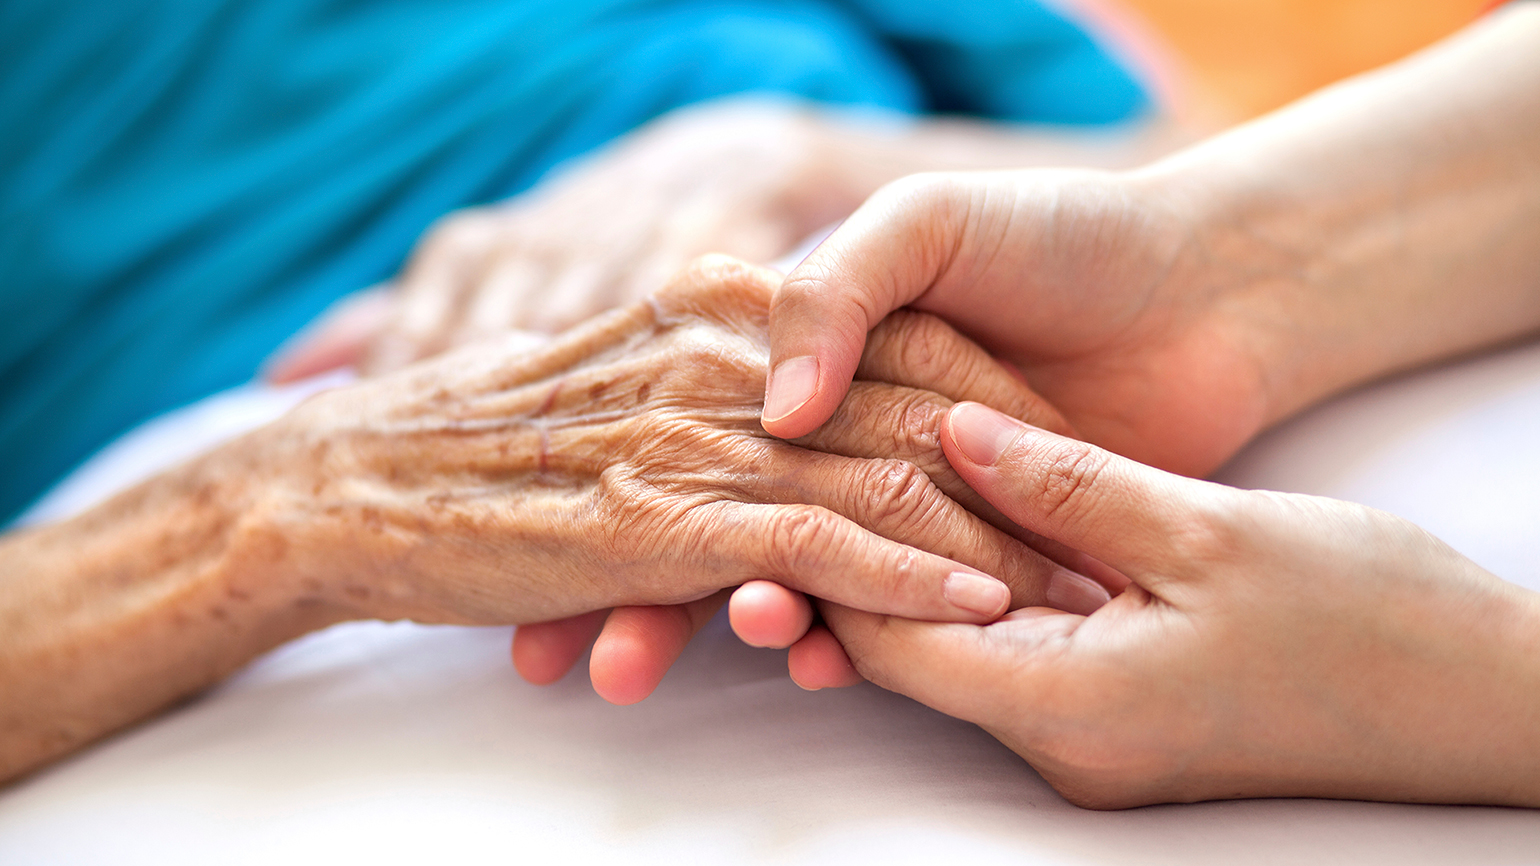 A caregiver's friend clasps hands with a loved one